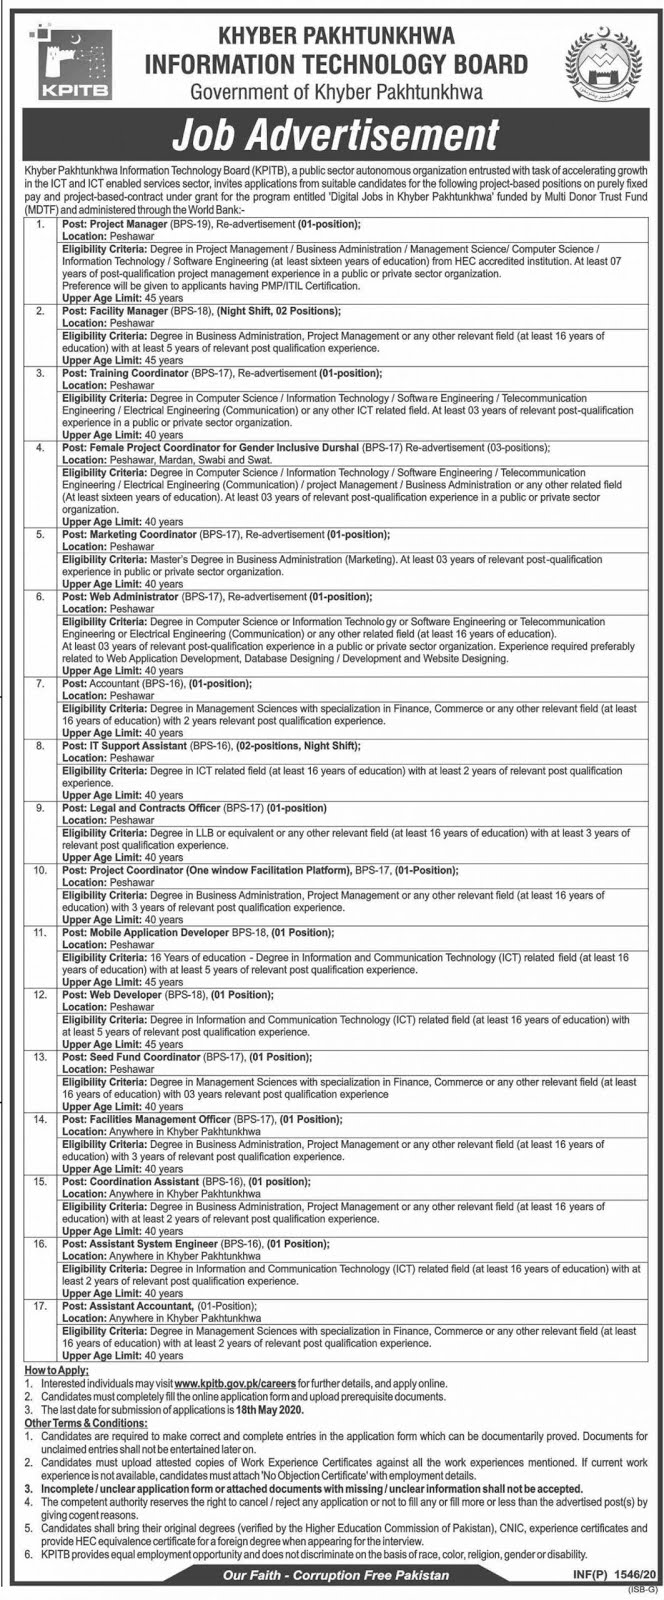 KPITB Jobs 2020 Khyber Pakhtunkhwa Information Technology Board Jobs 2020 Apply Online